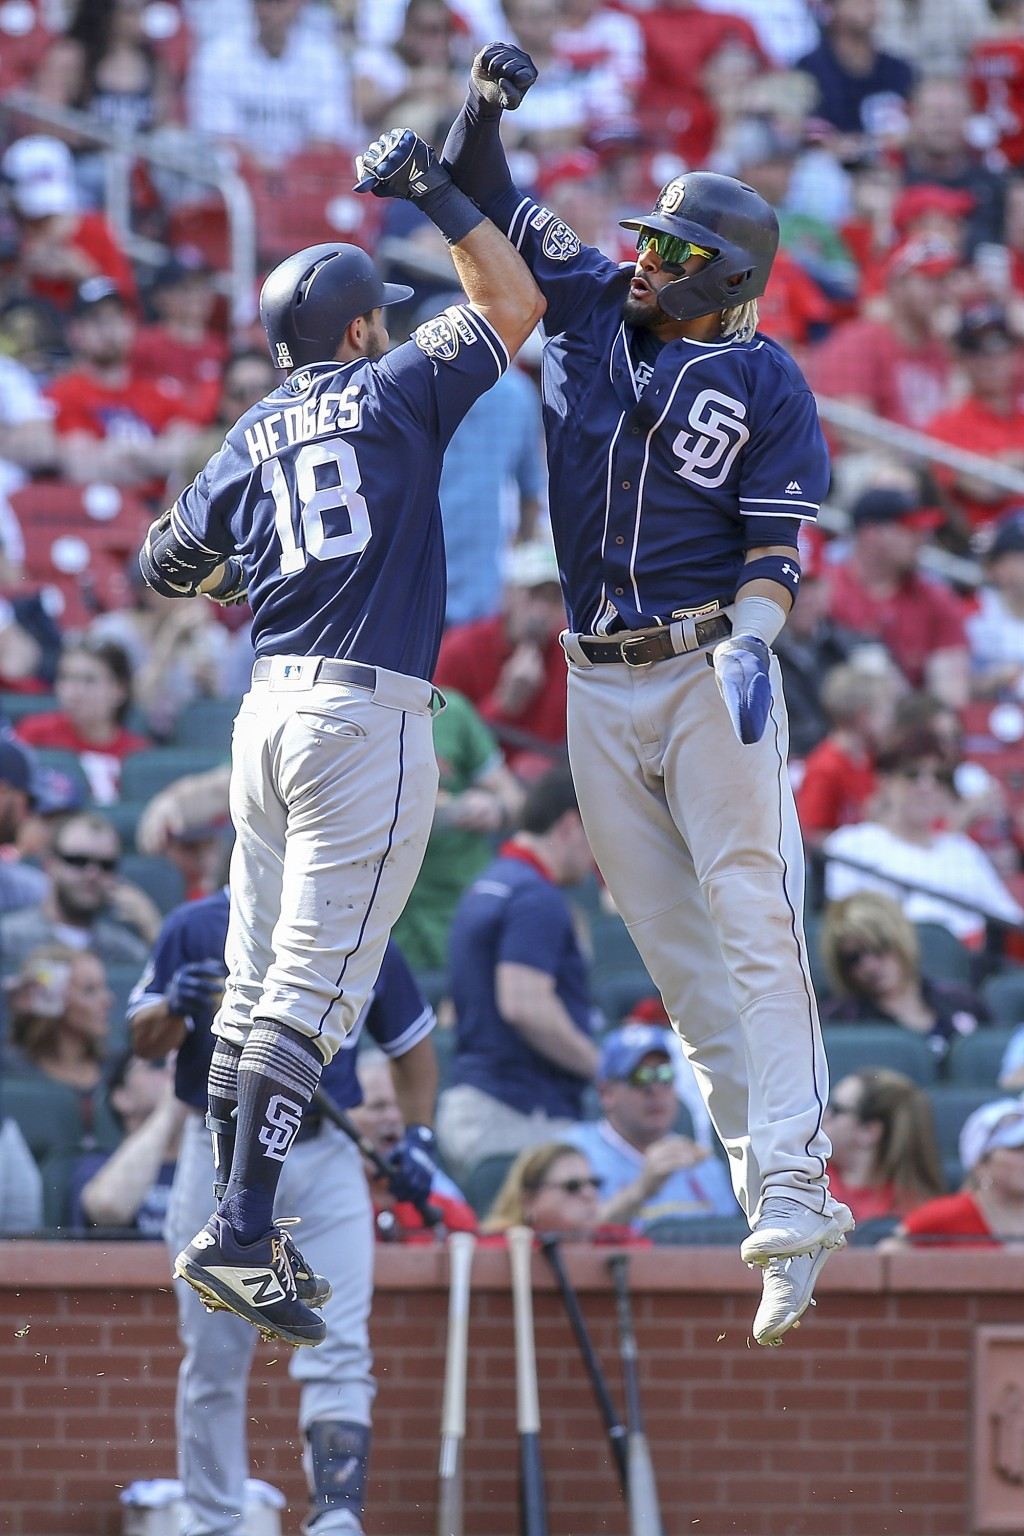 San Diego Padres' Austin Hedges, left, and Fernando Tatis Jr. celebrate after Hedges hit a two-run home run during the eighth inning of a baseball gam